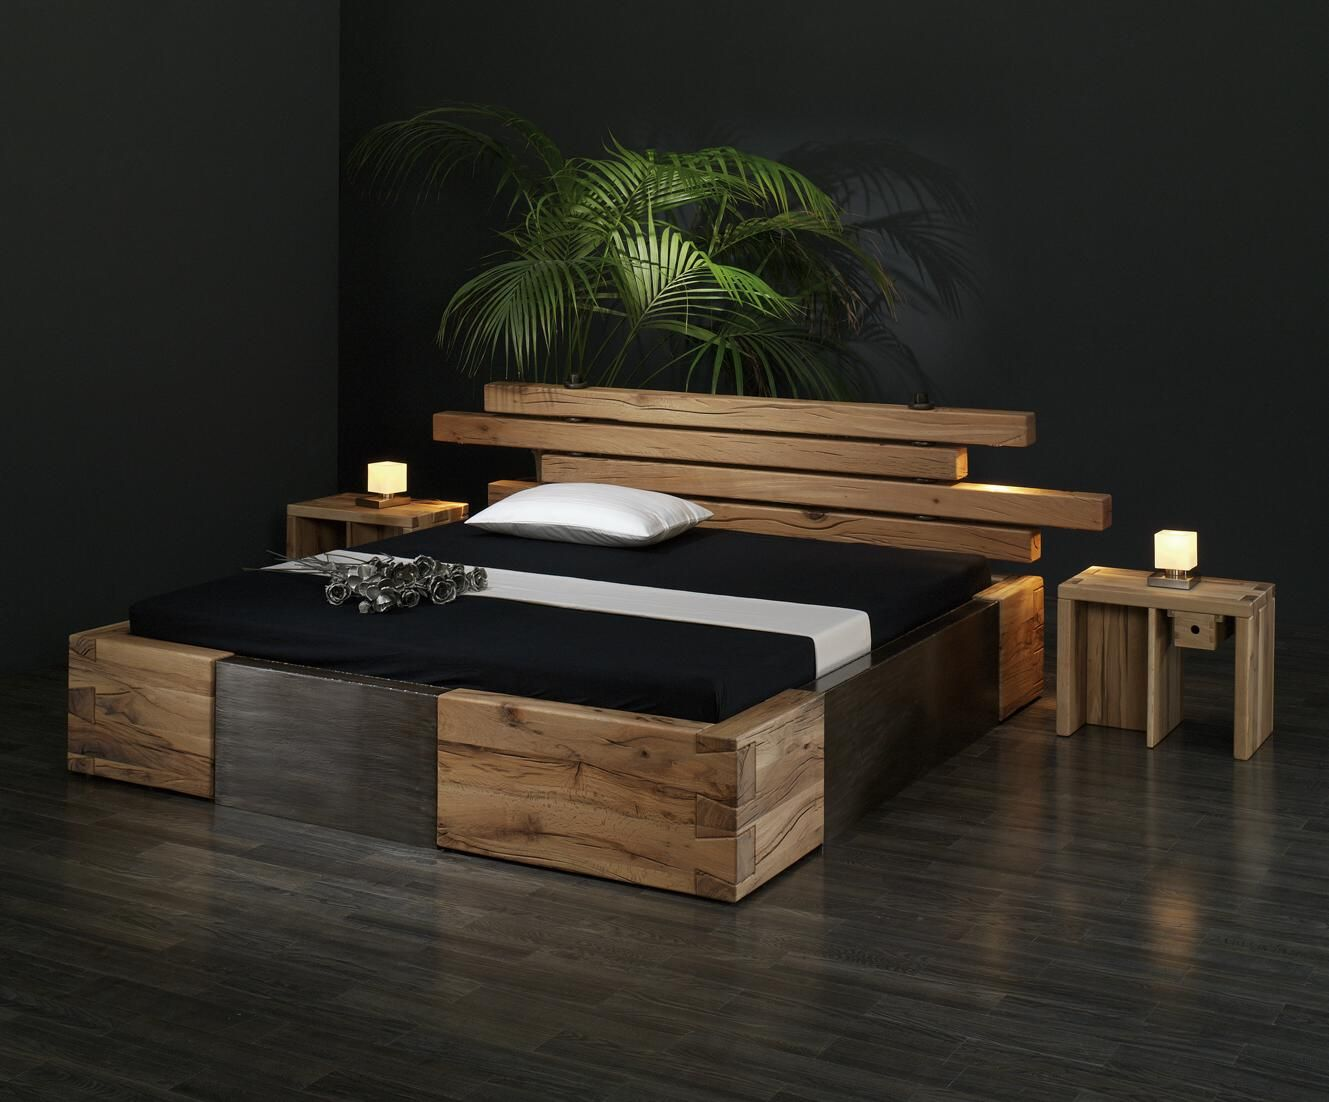 holz bett design - Google Search | Bedroom | Pinterest | Bett ...